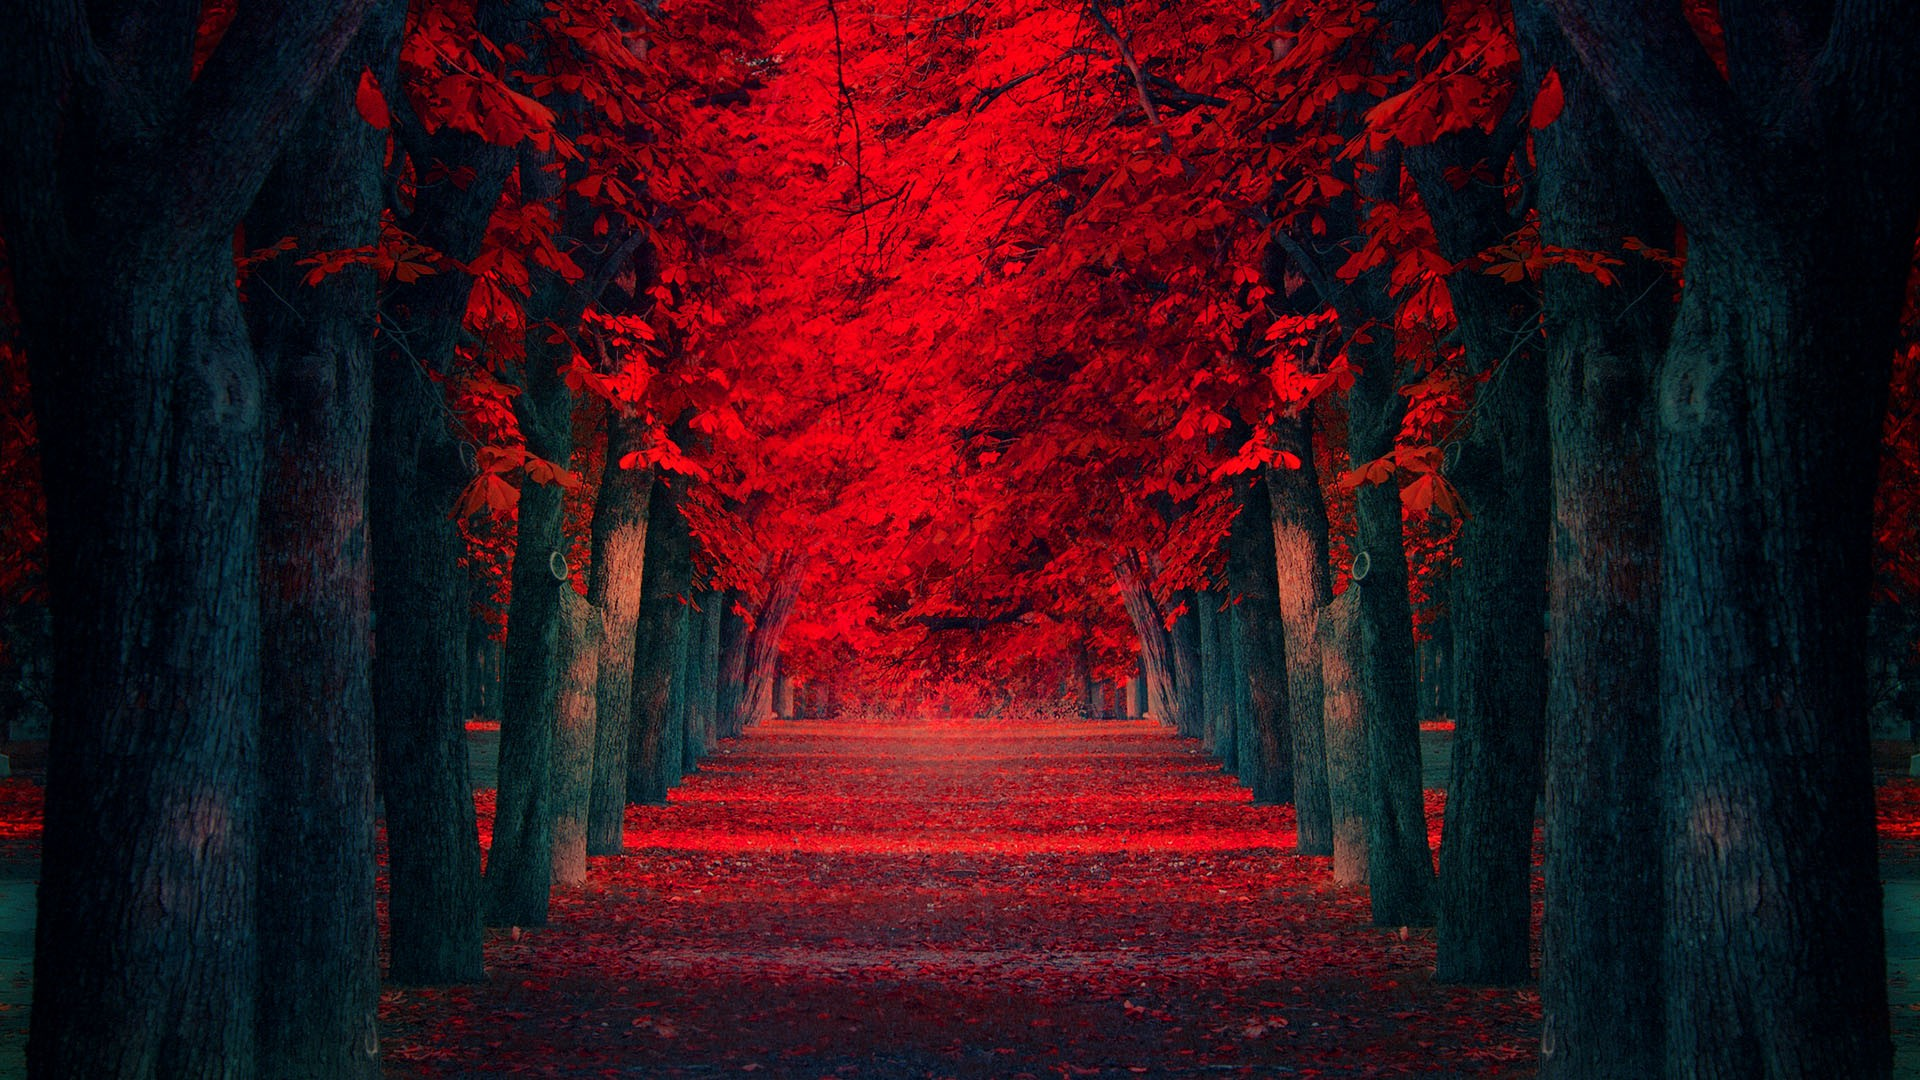 Hd Wallpapers O 11 Beautiful Road Wallpapers Hd The Nology